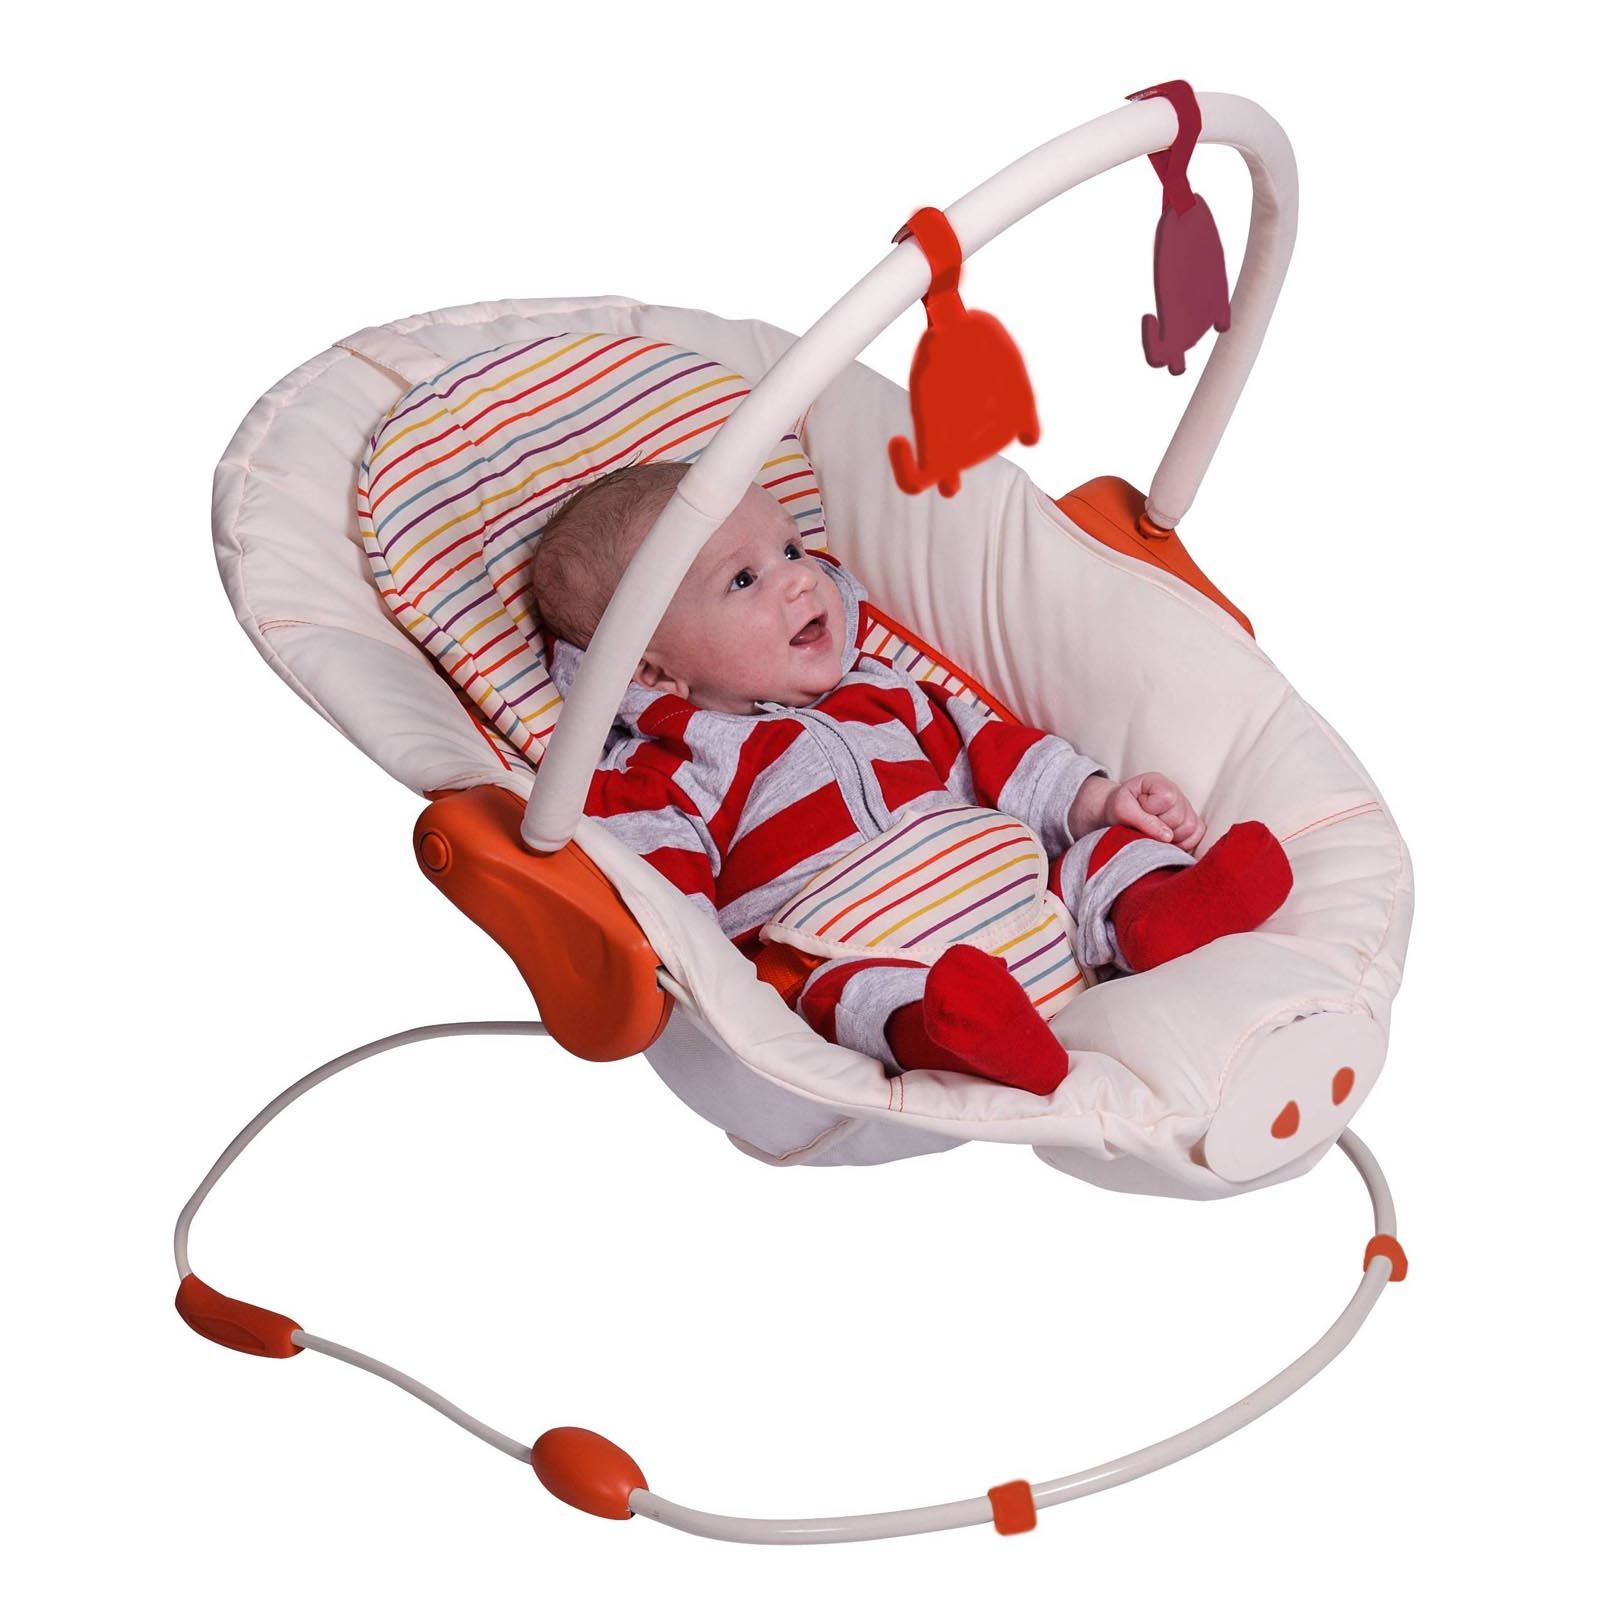 bouncy chairs for babies wedding chair covers brighton red kite snuggi bounce vibrating baby bouncer with